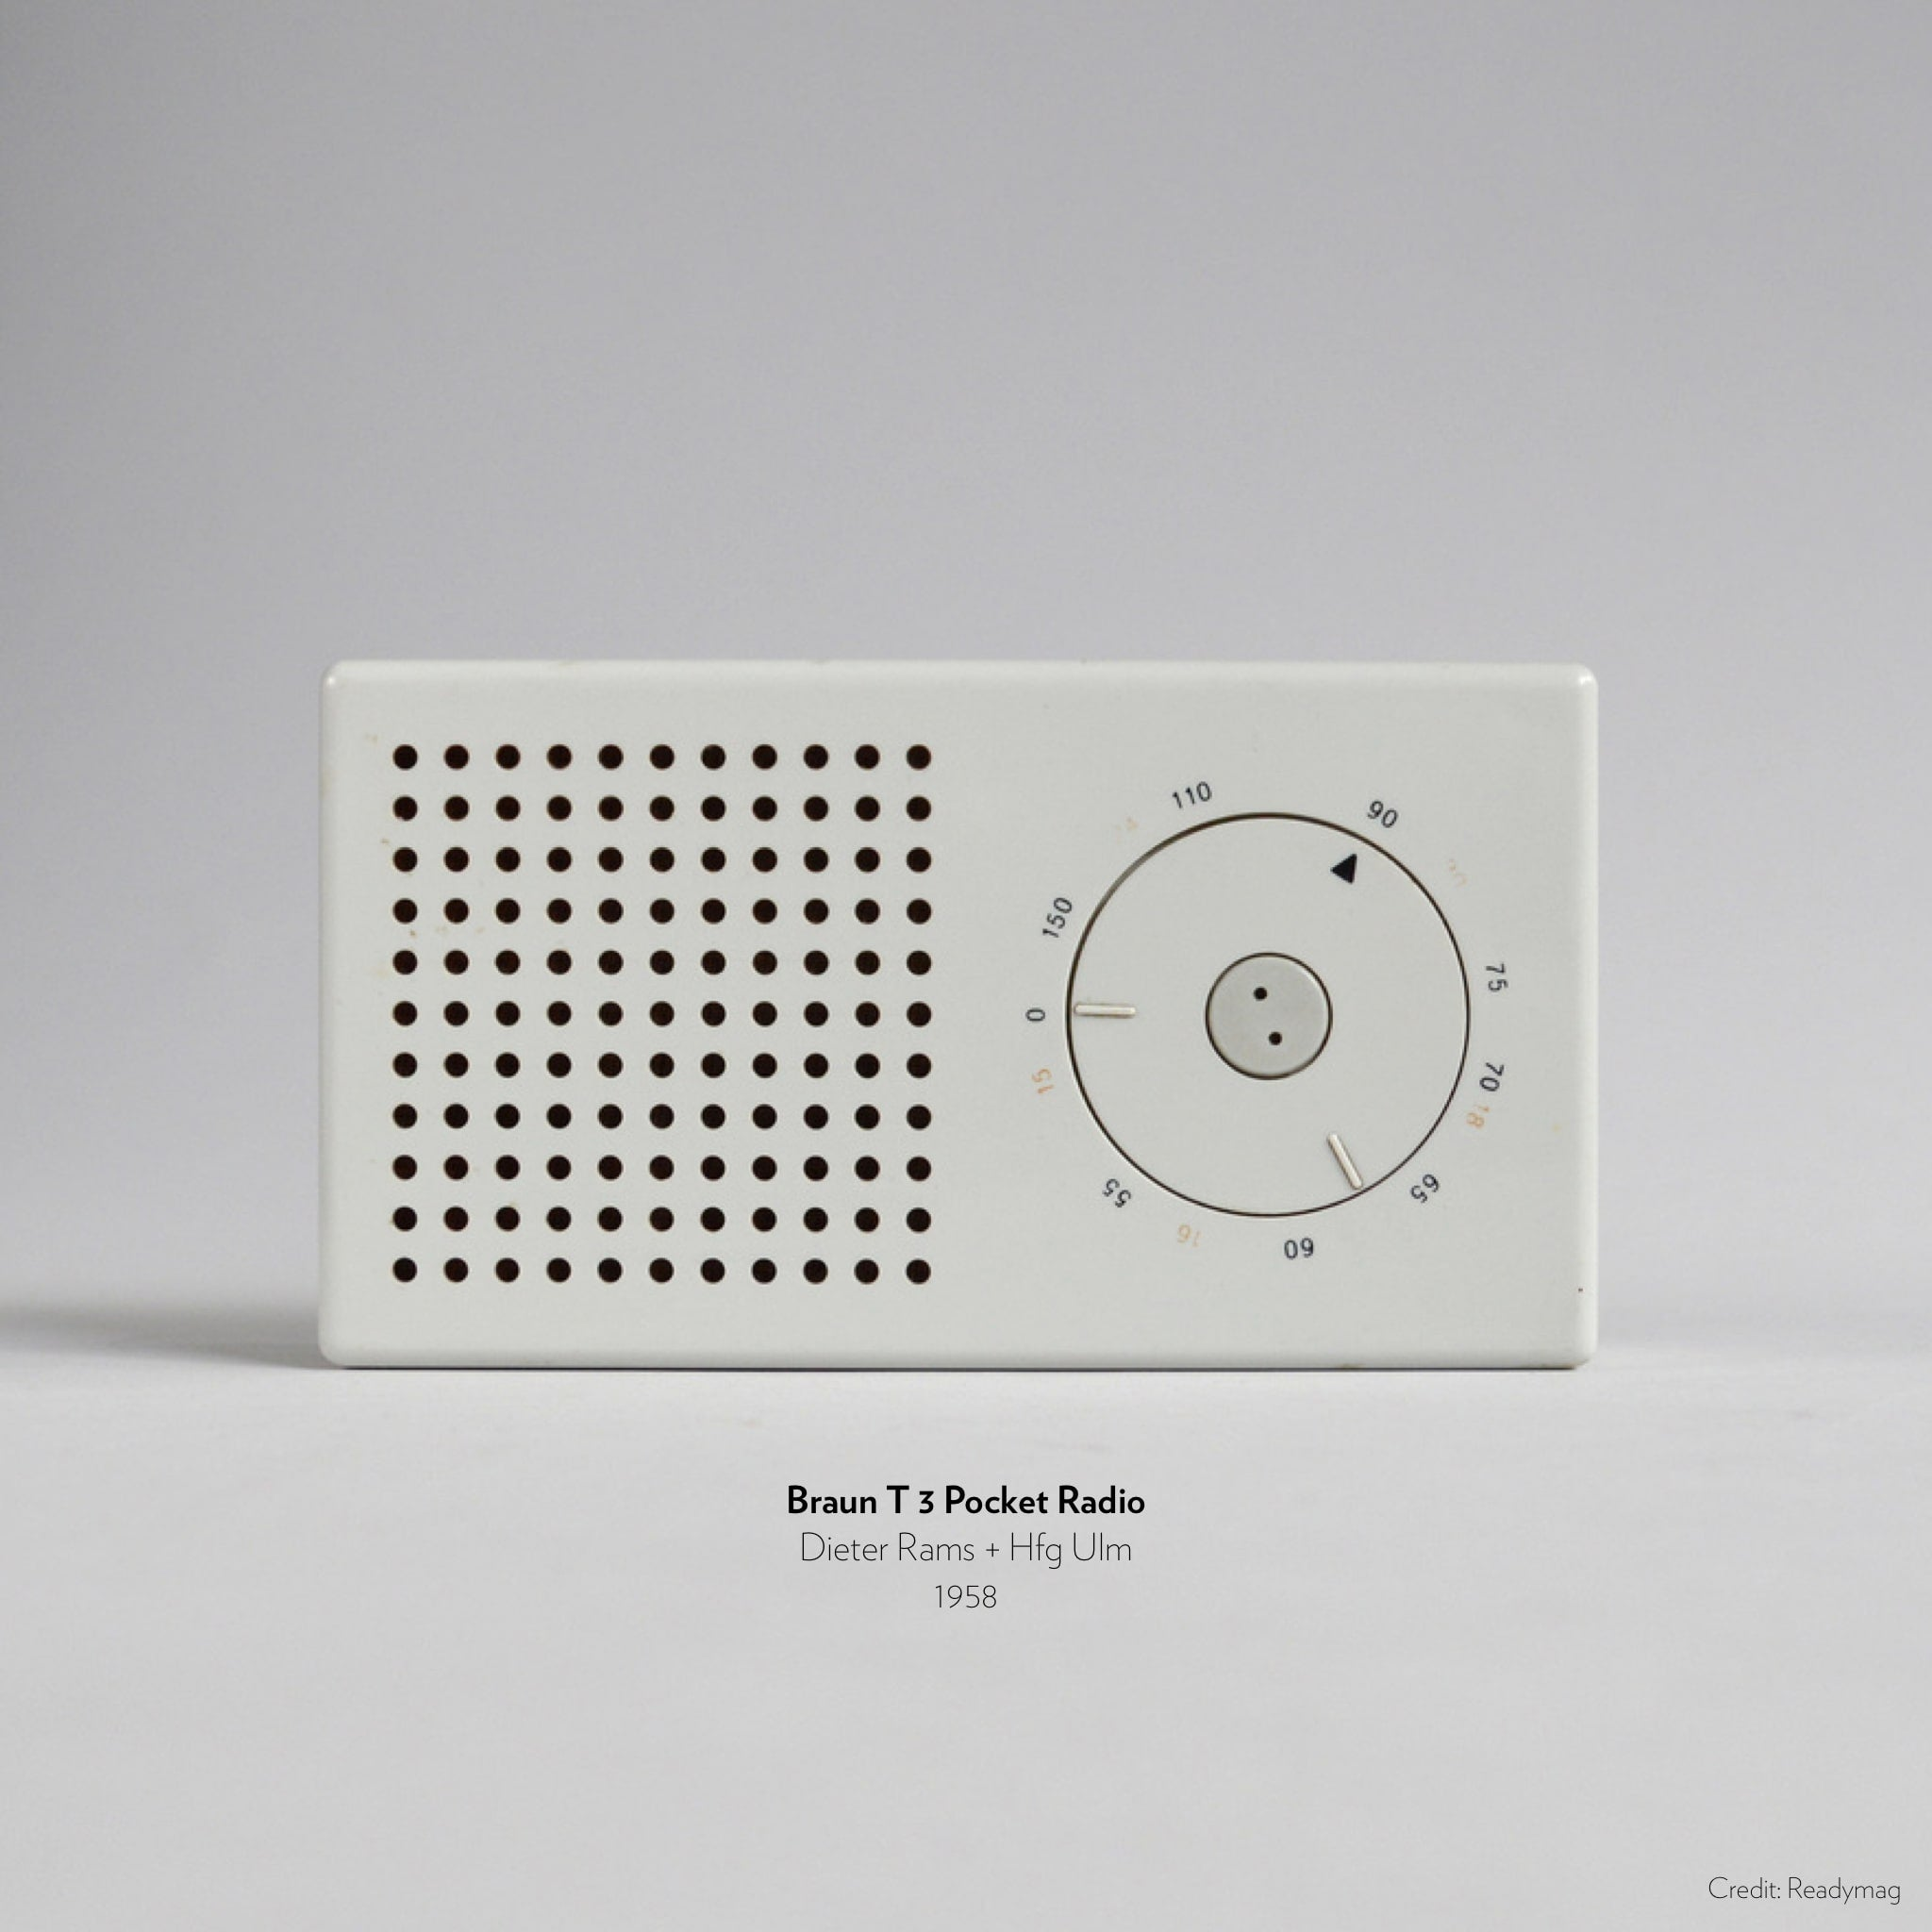 Braun T 3 pocket radio designed by Dieter Rams and Hfg Ulm in 1958, inspiration for Apple iPod.